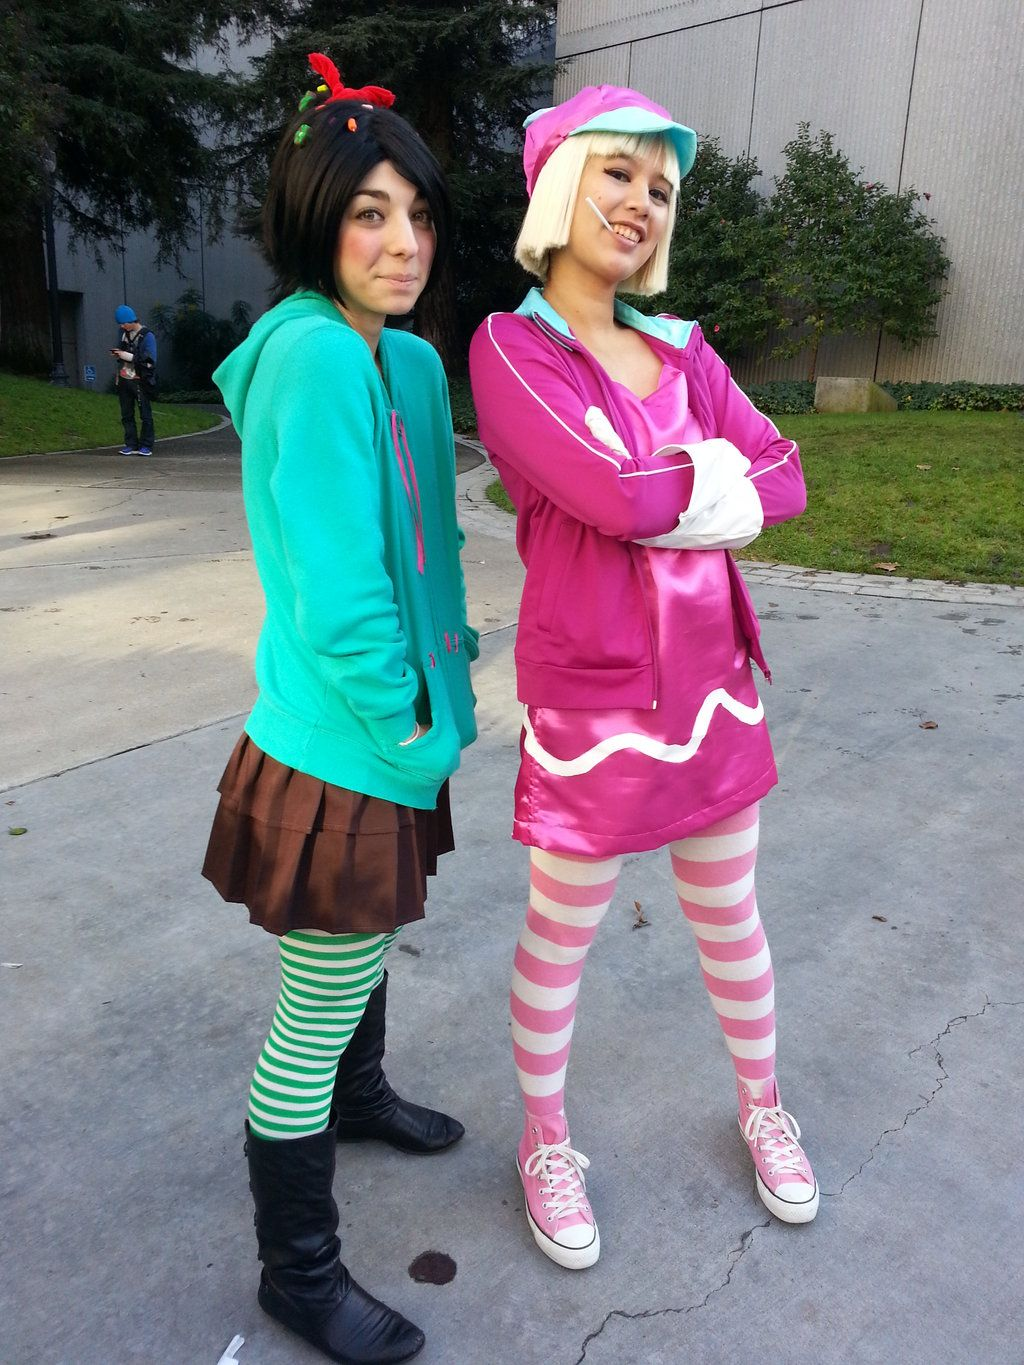 Wreck it ralph taffyta muttonfudge - Wreck It Ralph Vanellope And Taffyta By Demonexile0708 On Deviantart